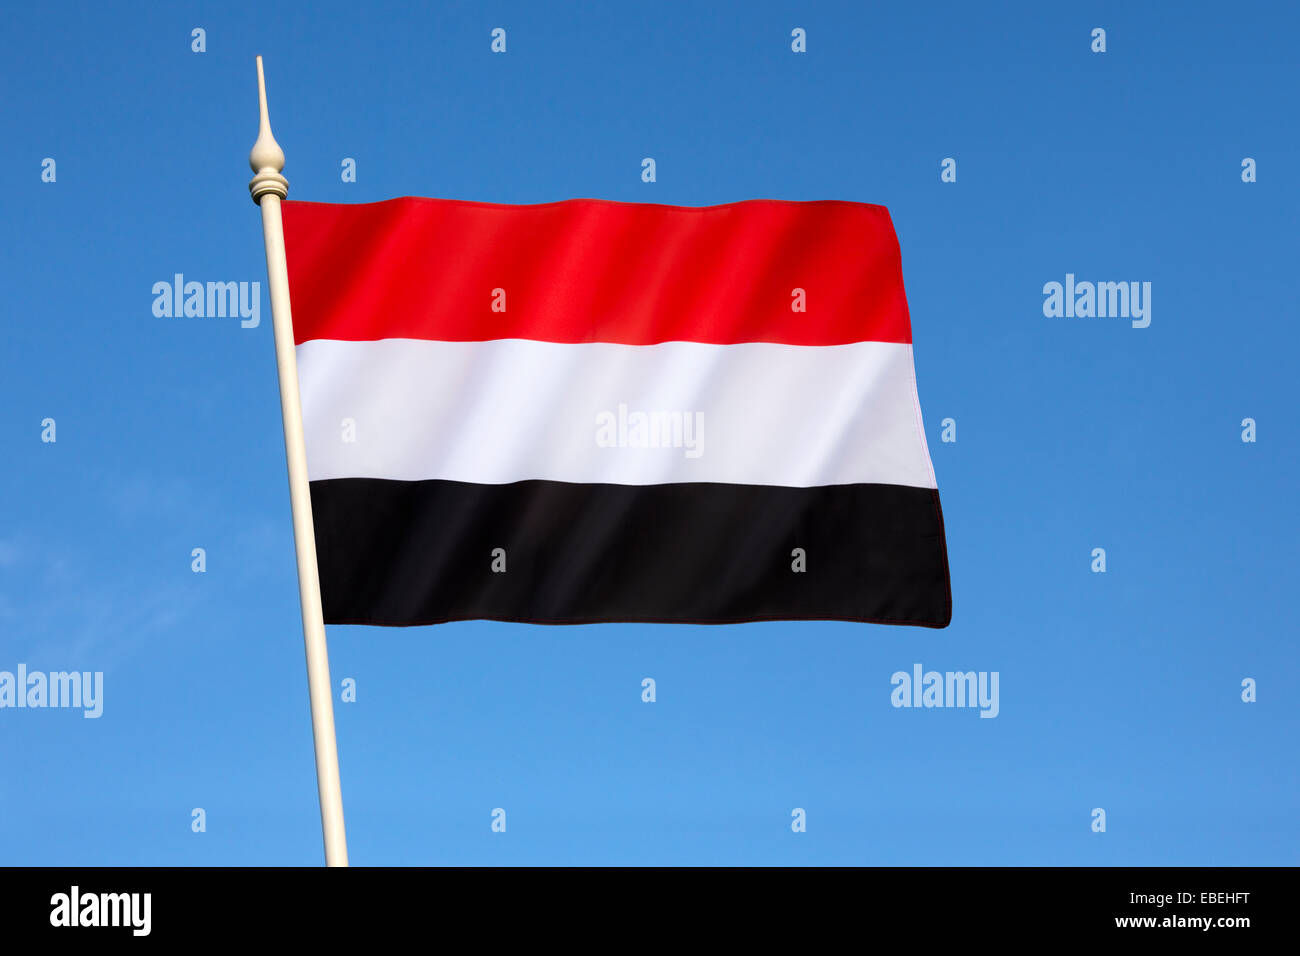 Flag of Yemen - Stock Image